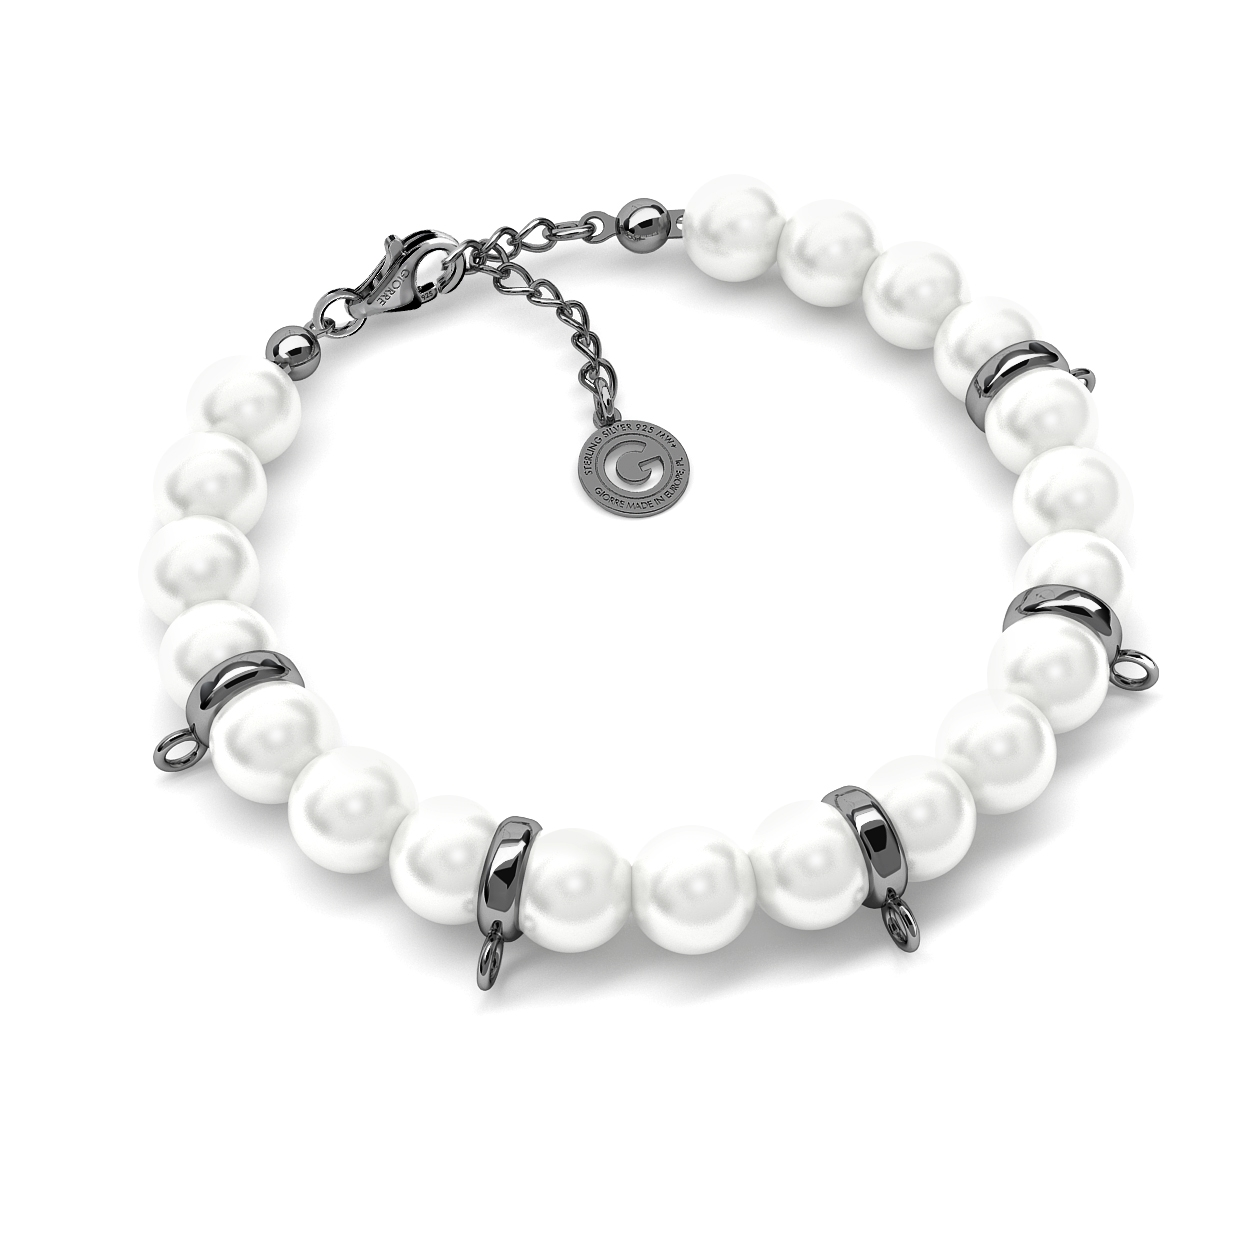 BRACELET WITH PEARLS, SILVER 925,  RHODIUM OR GOLD PLATED